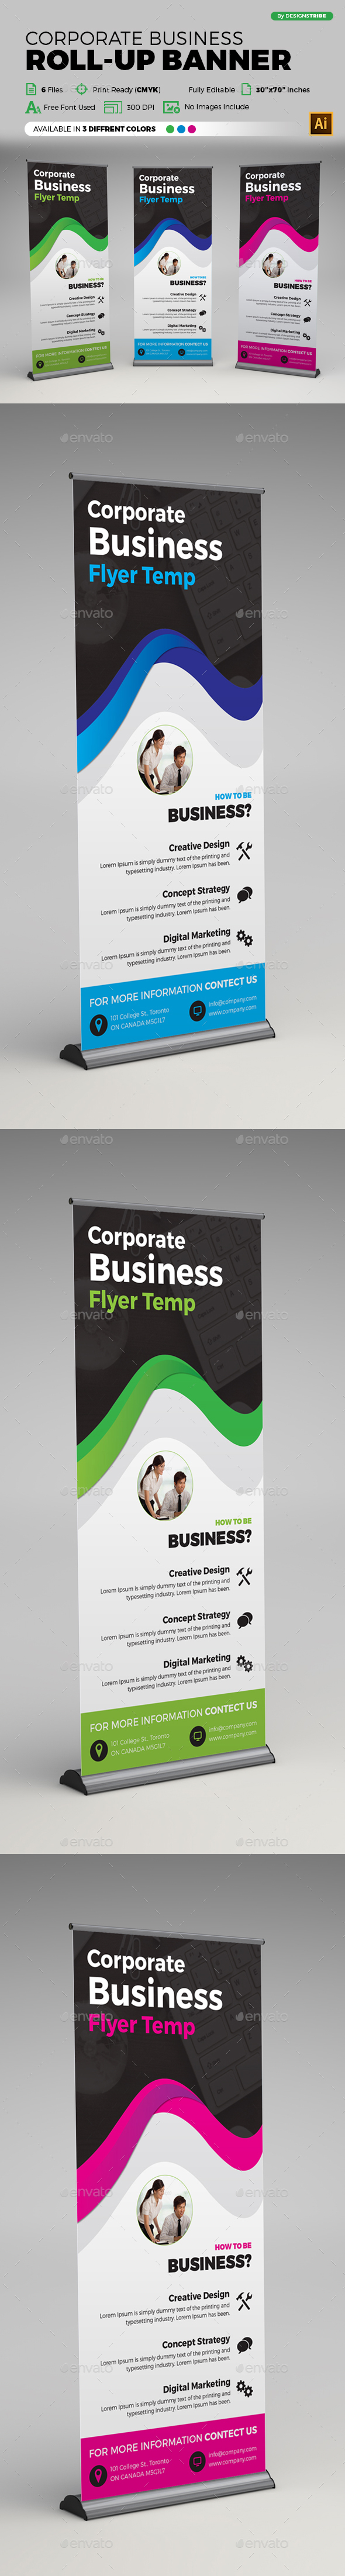 Corporate Business Roll-up Banner - Signage Print Templates